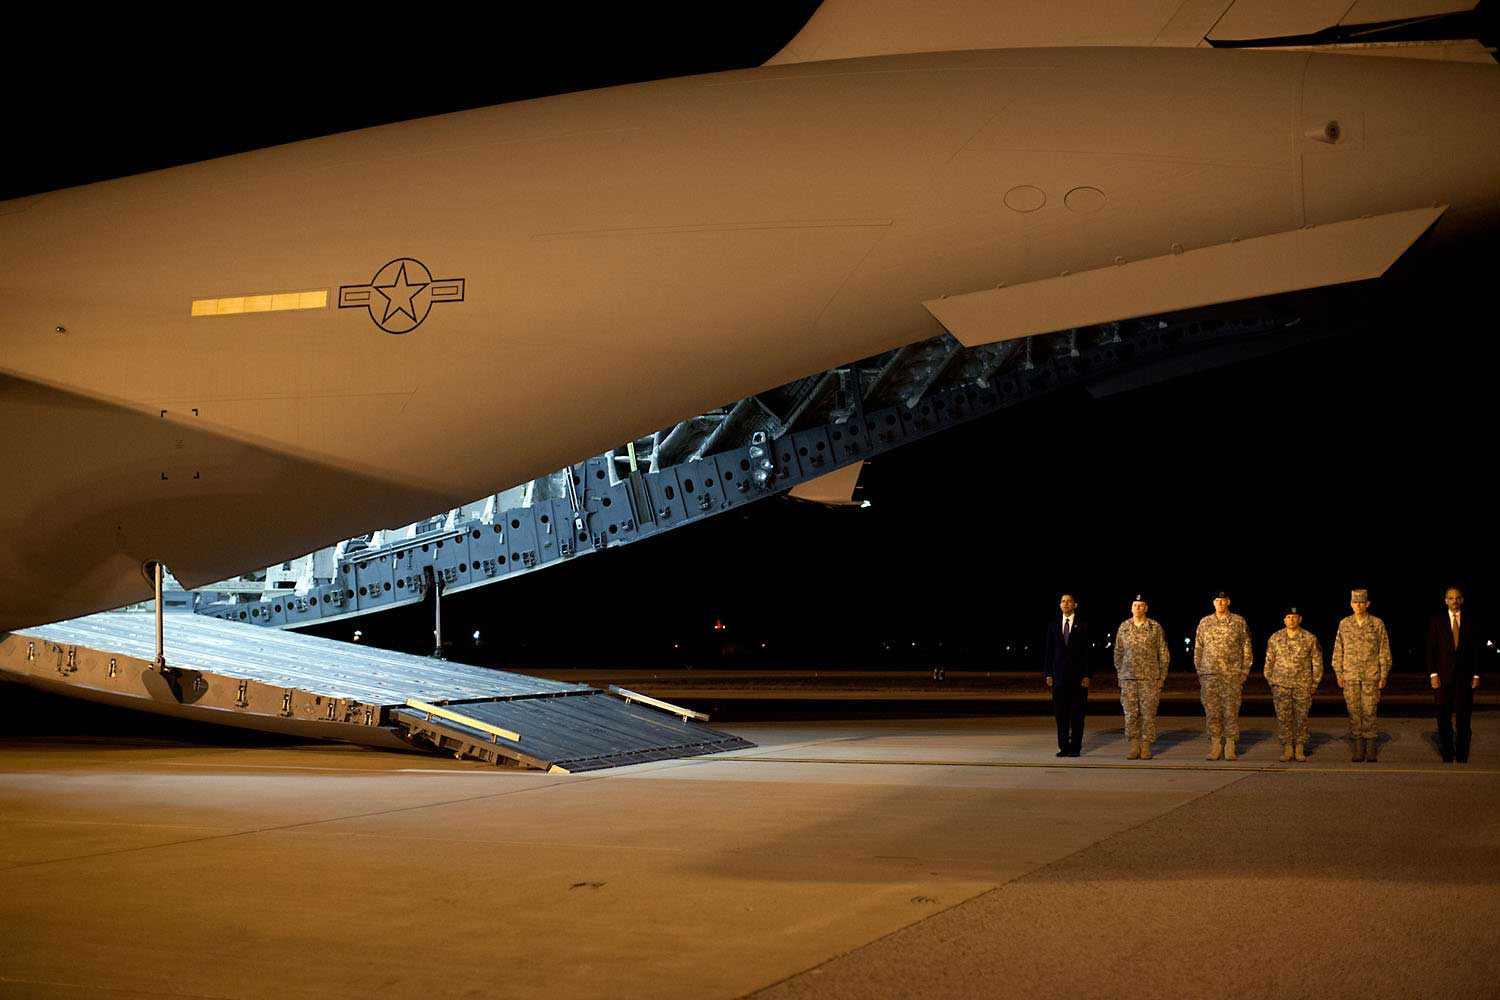 """This photo was taken about 4AM, Oct. 29, 2009, after the President made an unannounced trip to Dover Air Force Base to pay respects to fallen troops coming back from Afghanistan. After meeting privately with the families, the President walked alone up the ramp of the cargo plane carrying the 18 caskets, all draped in American flags. I could see the emotion on his face as he walked from casket to casket, leaving a Presidential coin on each. When he was done, he paused for a few minutes, head bowed in prayer. I heard him tell others later how that was the most difficult moment of his Presidency thus far. Out of respect for the families, not all of who wanted their ceremony photographed, we can't show those pictures (but they will become part of Presidential archive.)"